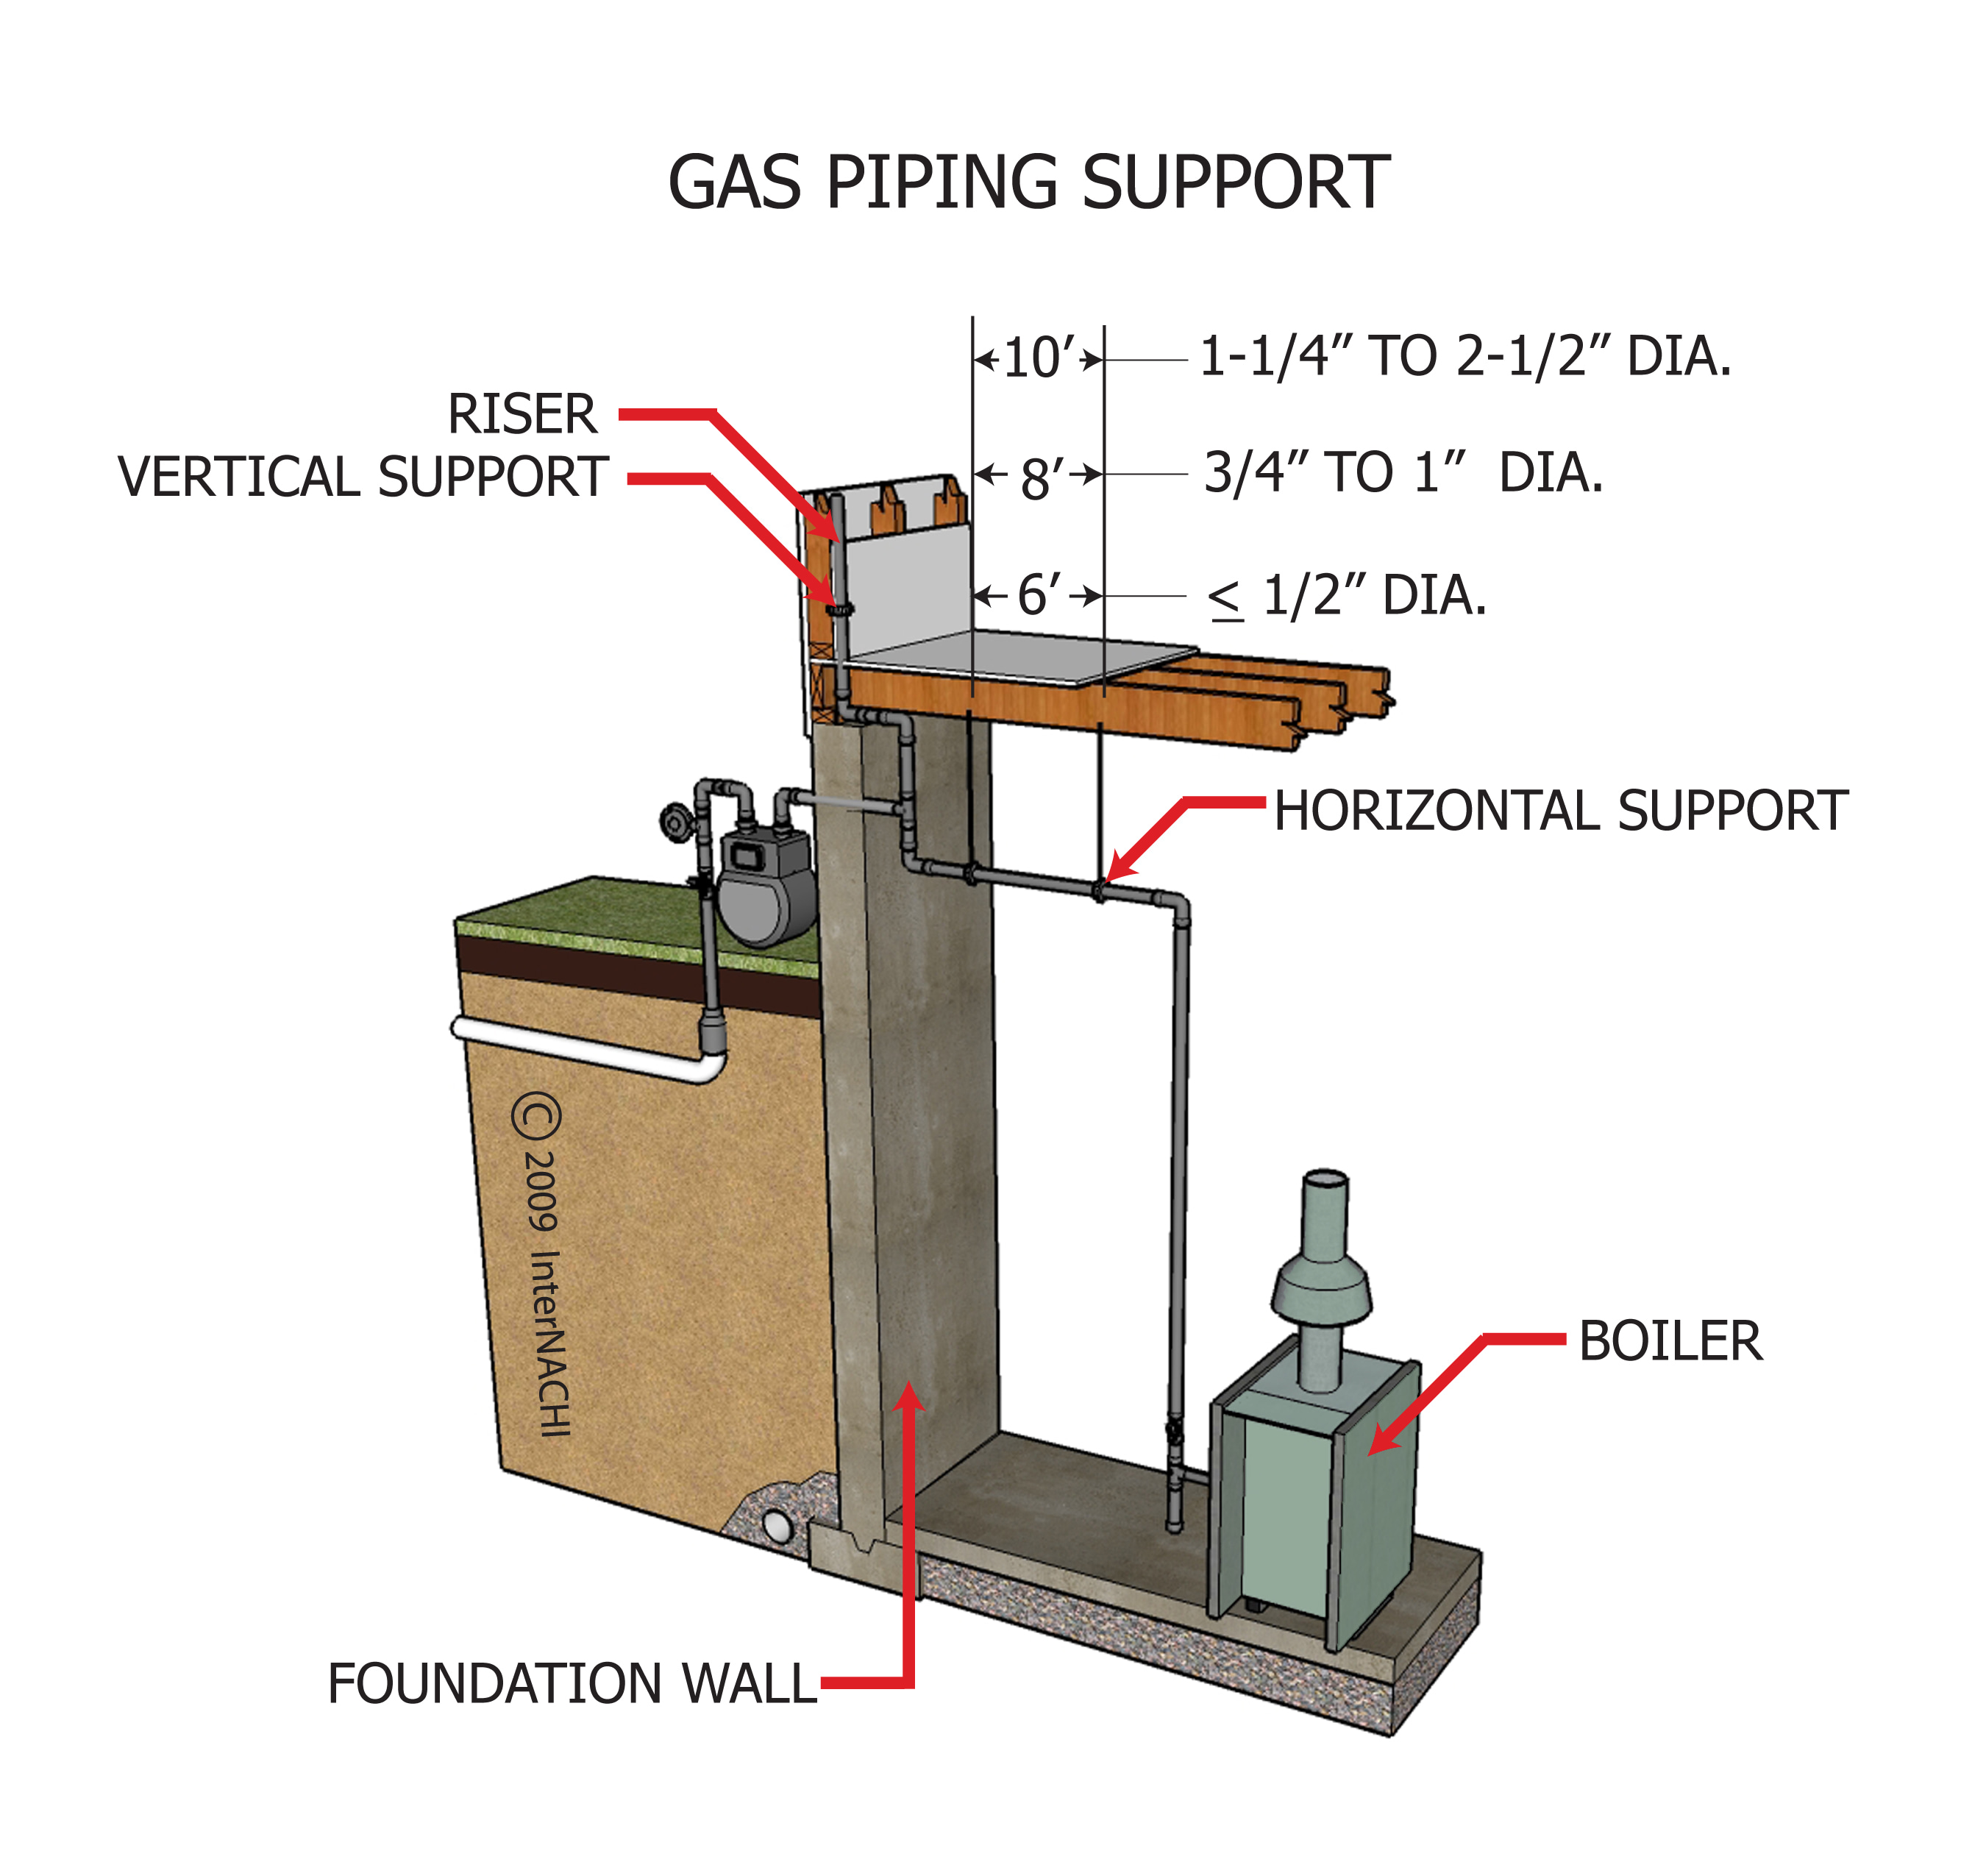 Gas piping support.